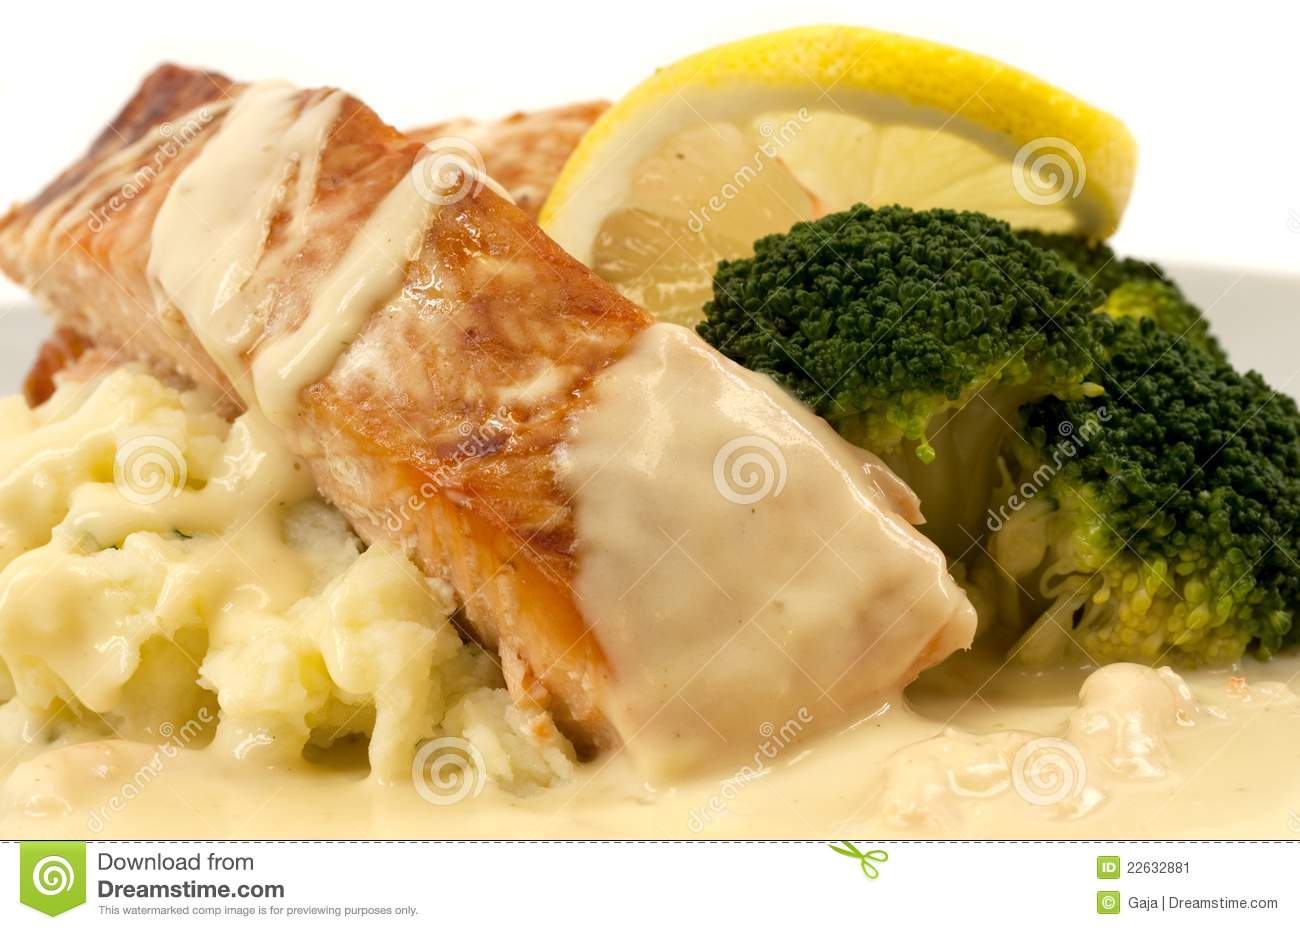 Salmon with mashed potatoes, broccoli, and creamed lemon shrimp sauce.